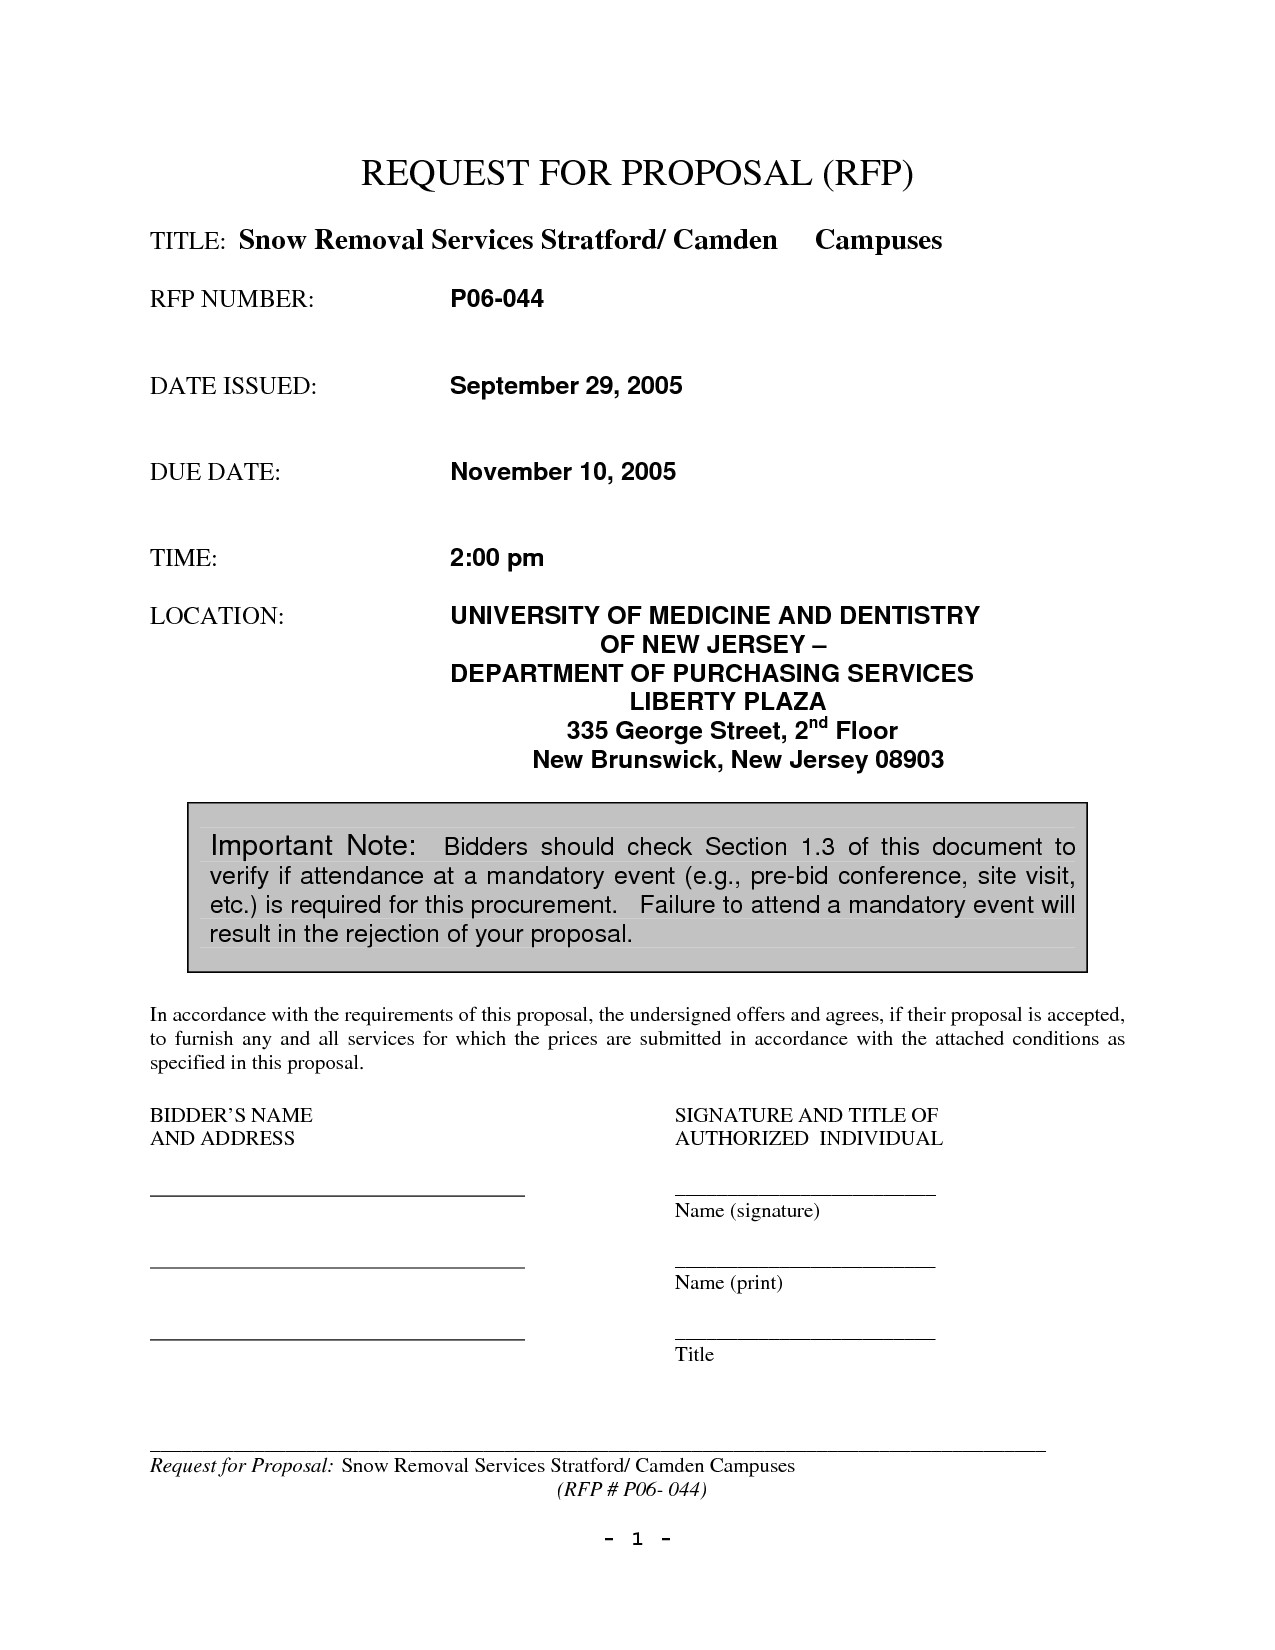 Snow Plowing Bid Proposal Template 10 Best Images Of Snow Plow Proposal forms Snow Removal